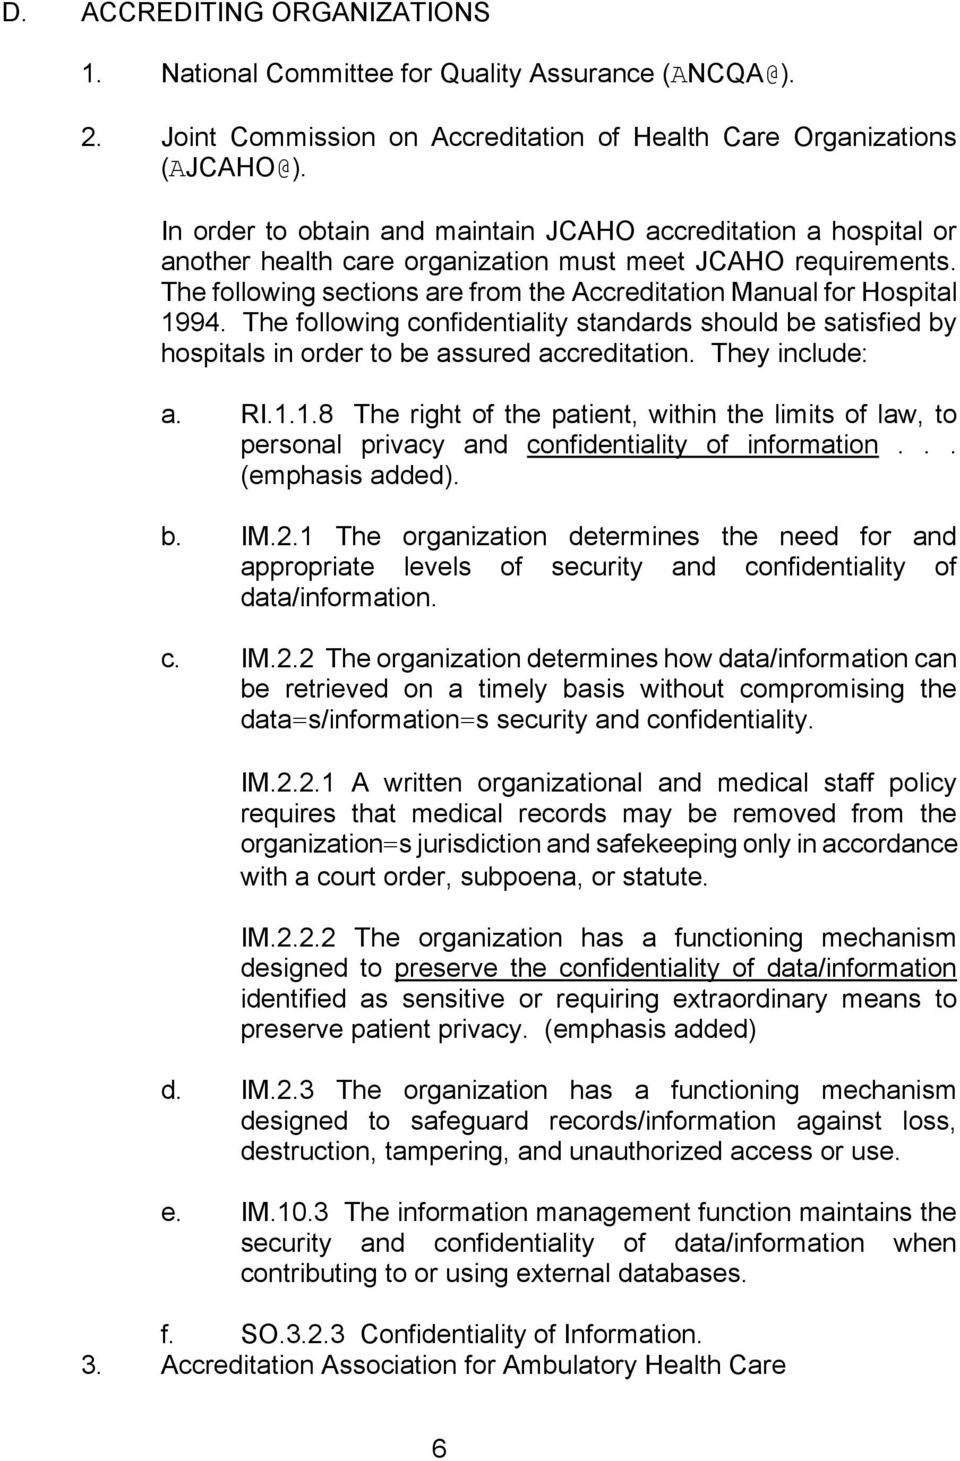 The following sections are from the Accreditation Manual for Hospital 1994. The following confidentiality standards should be satisfied by hospitals in order to be assured accreditation.